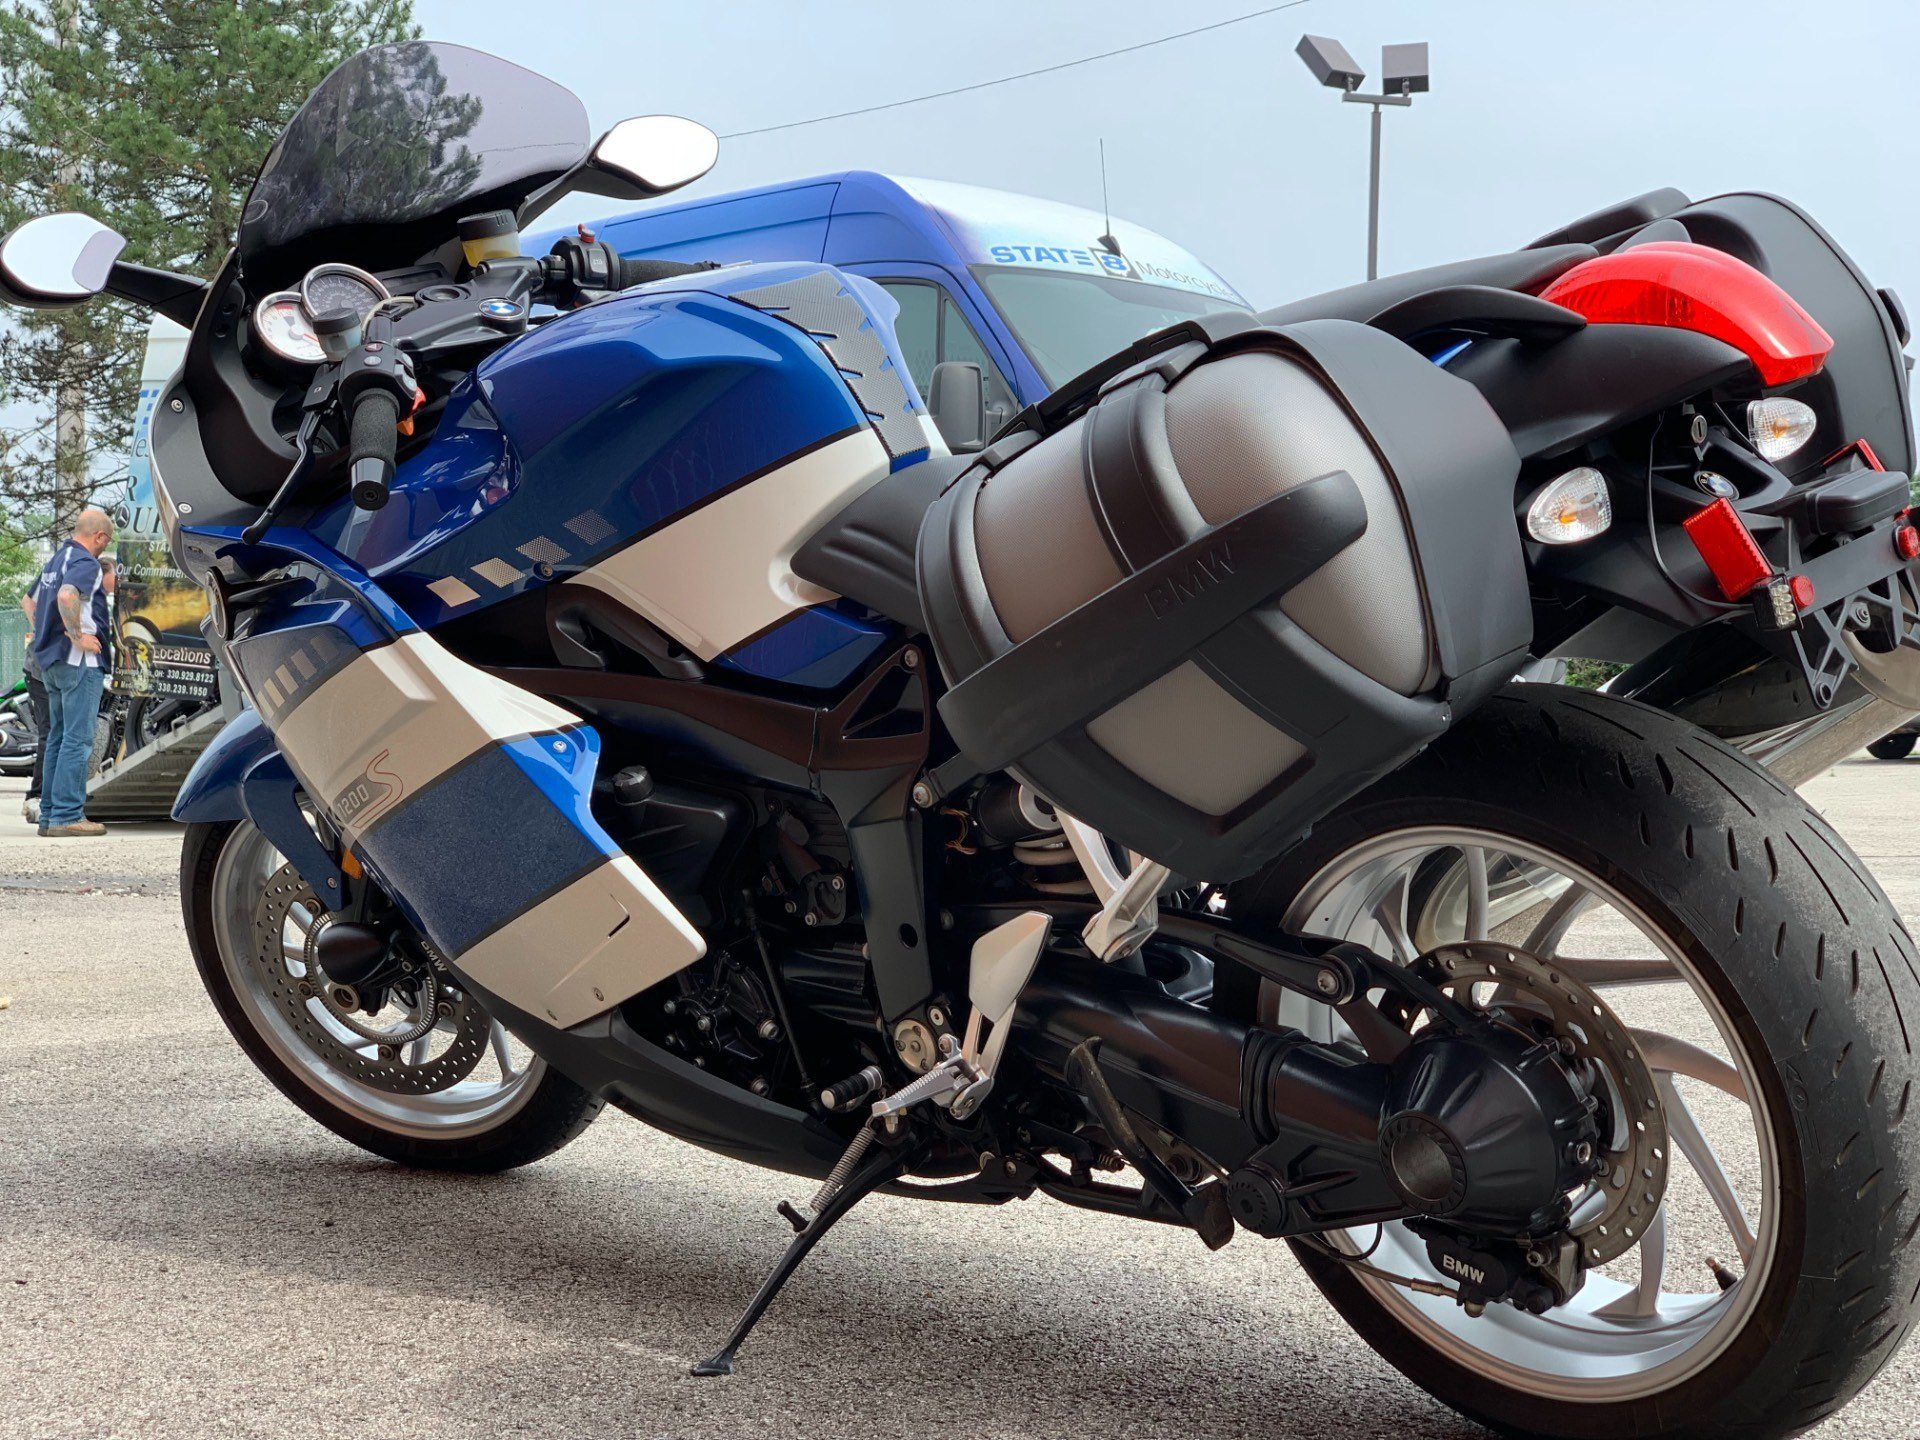 2005 BMW K 1200 S in Cleveland, Ohio - Photo 2